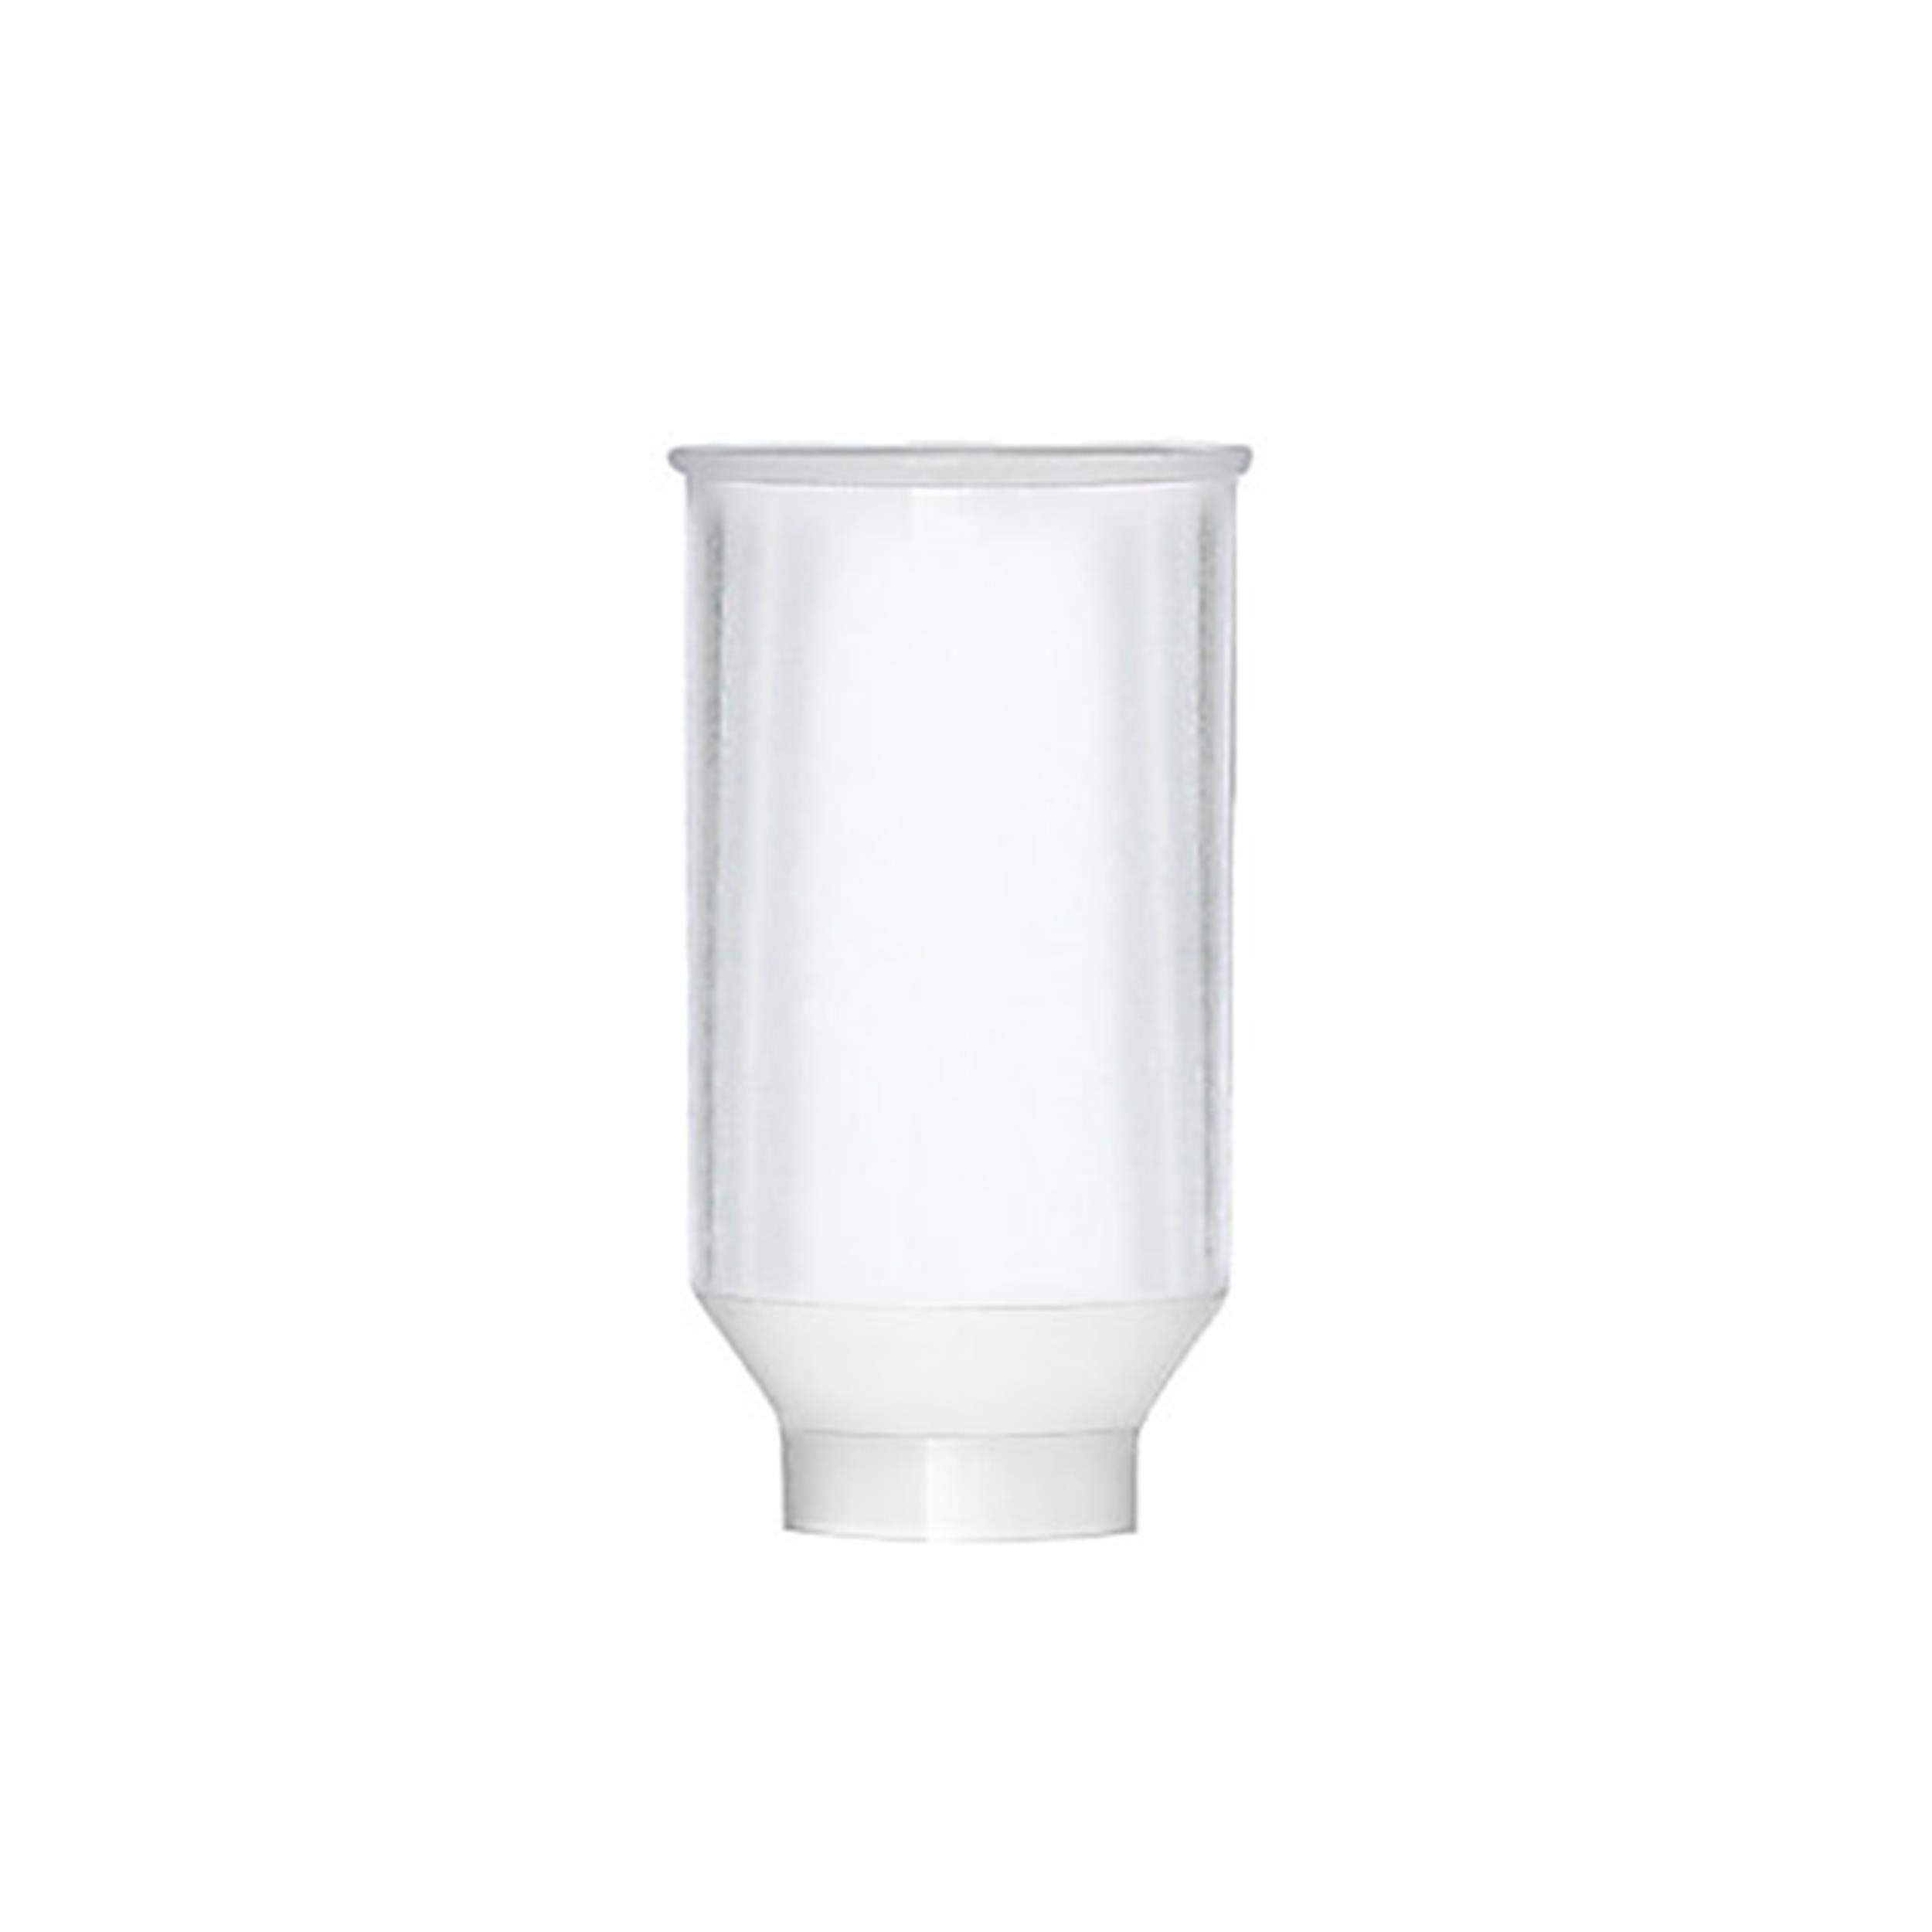 Zymo Research C1032-25 Conical Reservoir, 50 ml Capacity (Pack of 25) by Zymo Research